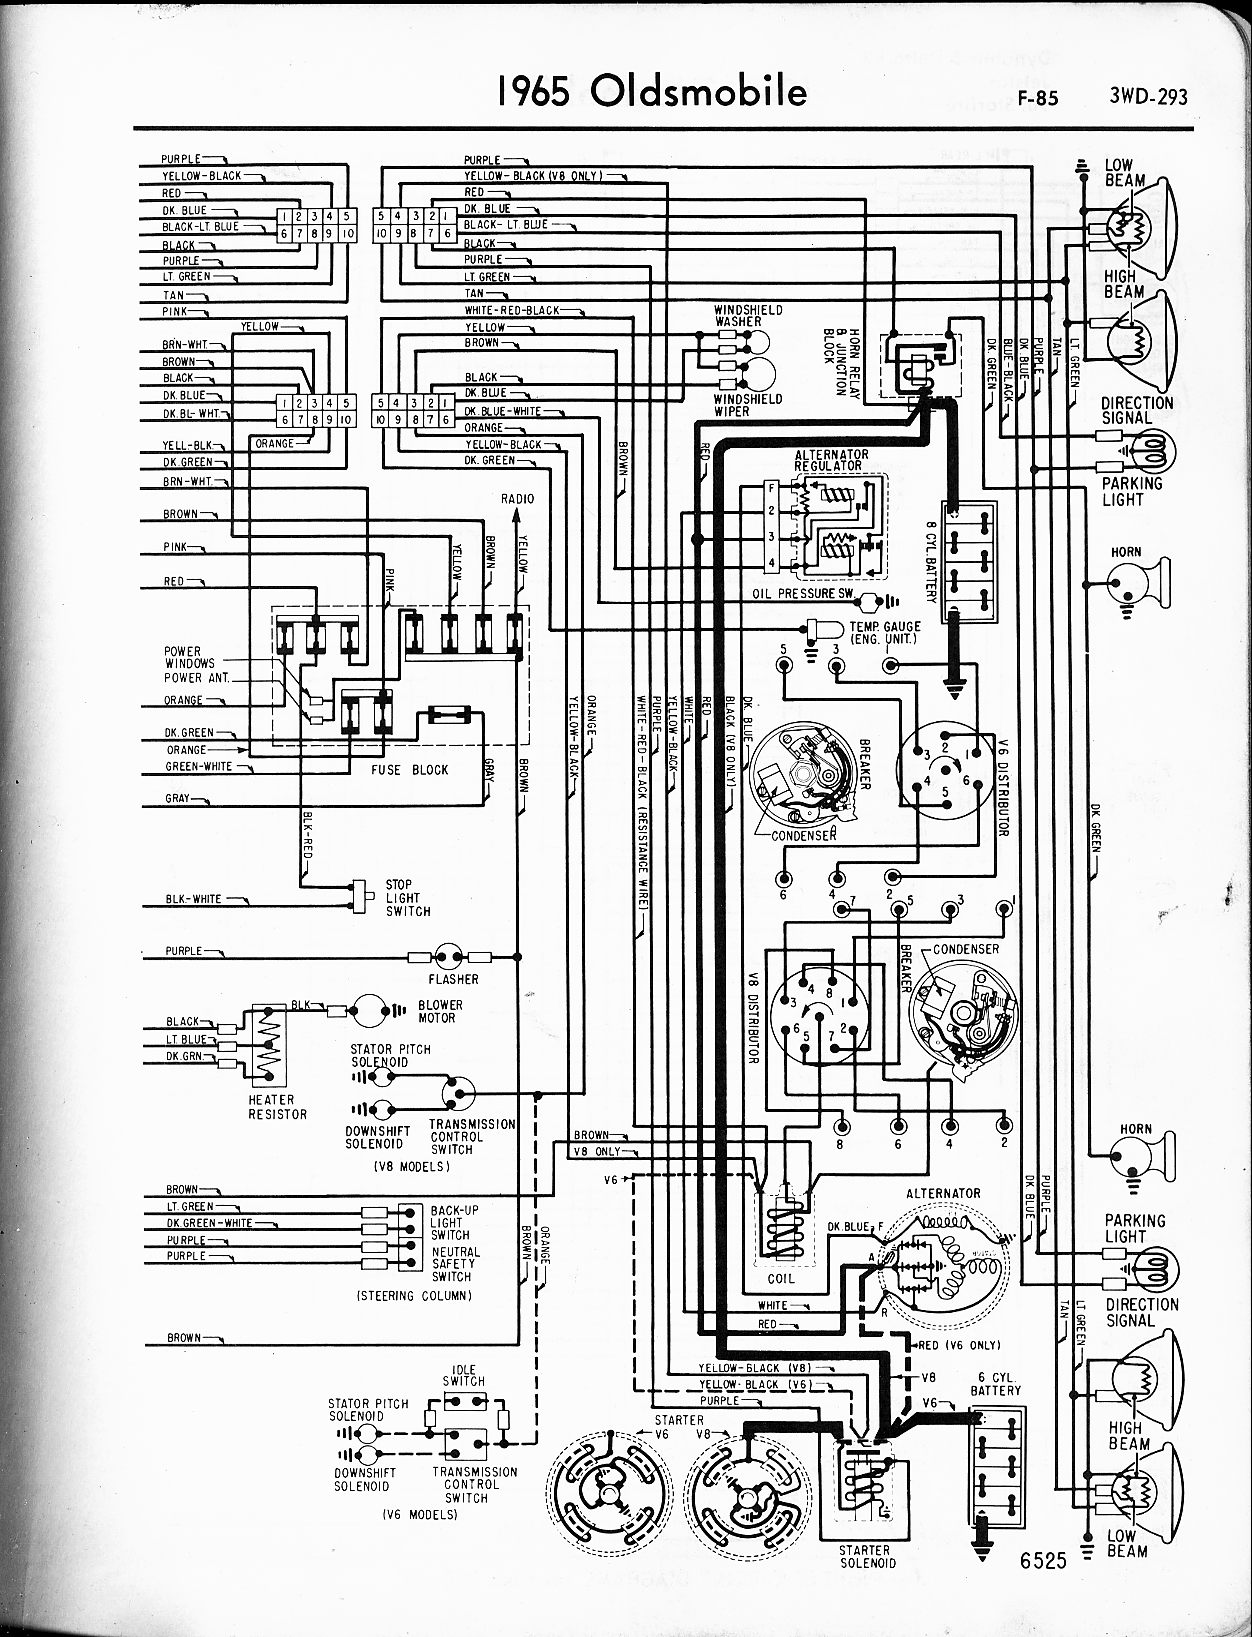 oldsmobile 88 wiring diagram oldsmobile wiring diagrams - the old car manual project